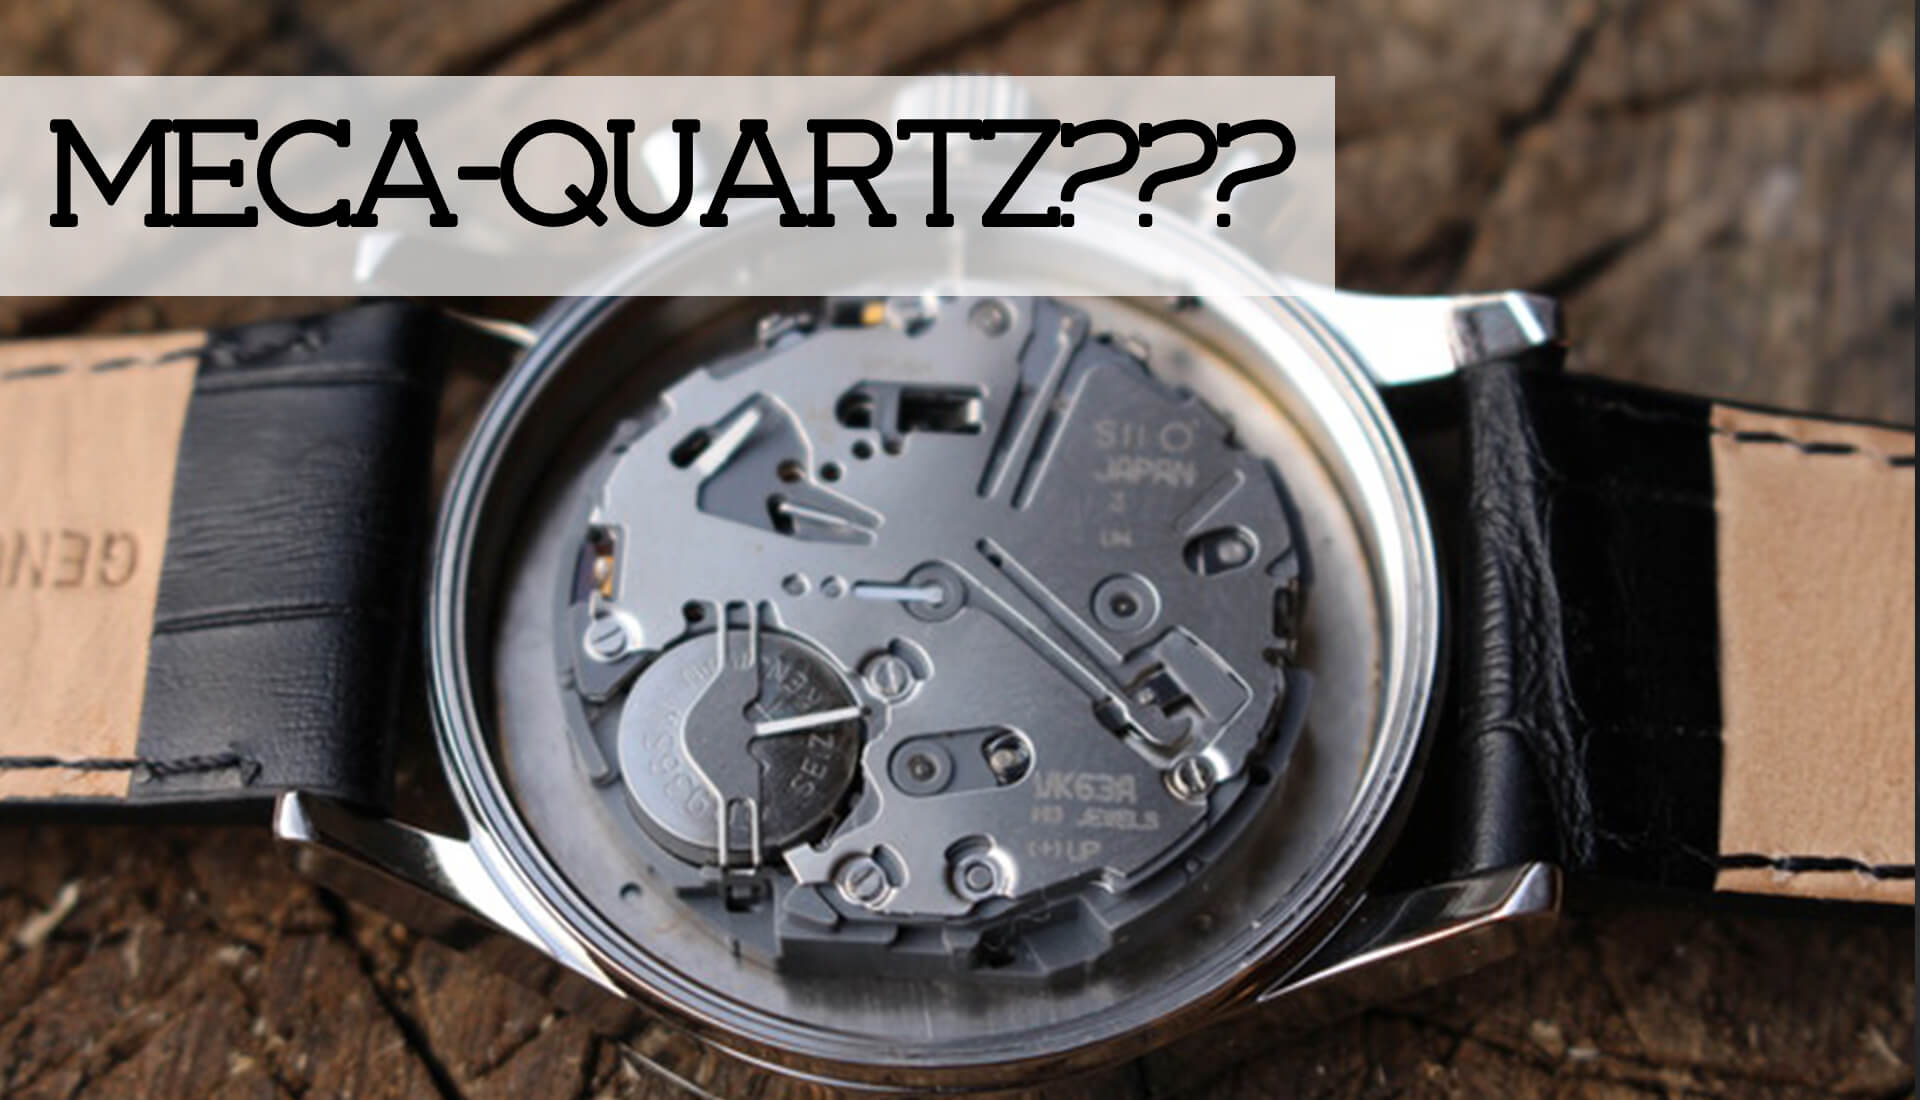 Watch 101: What is a Meca-Quartz Chronograph Movement?